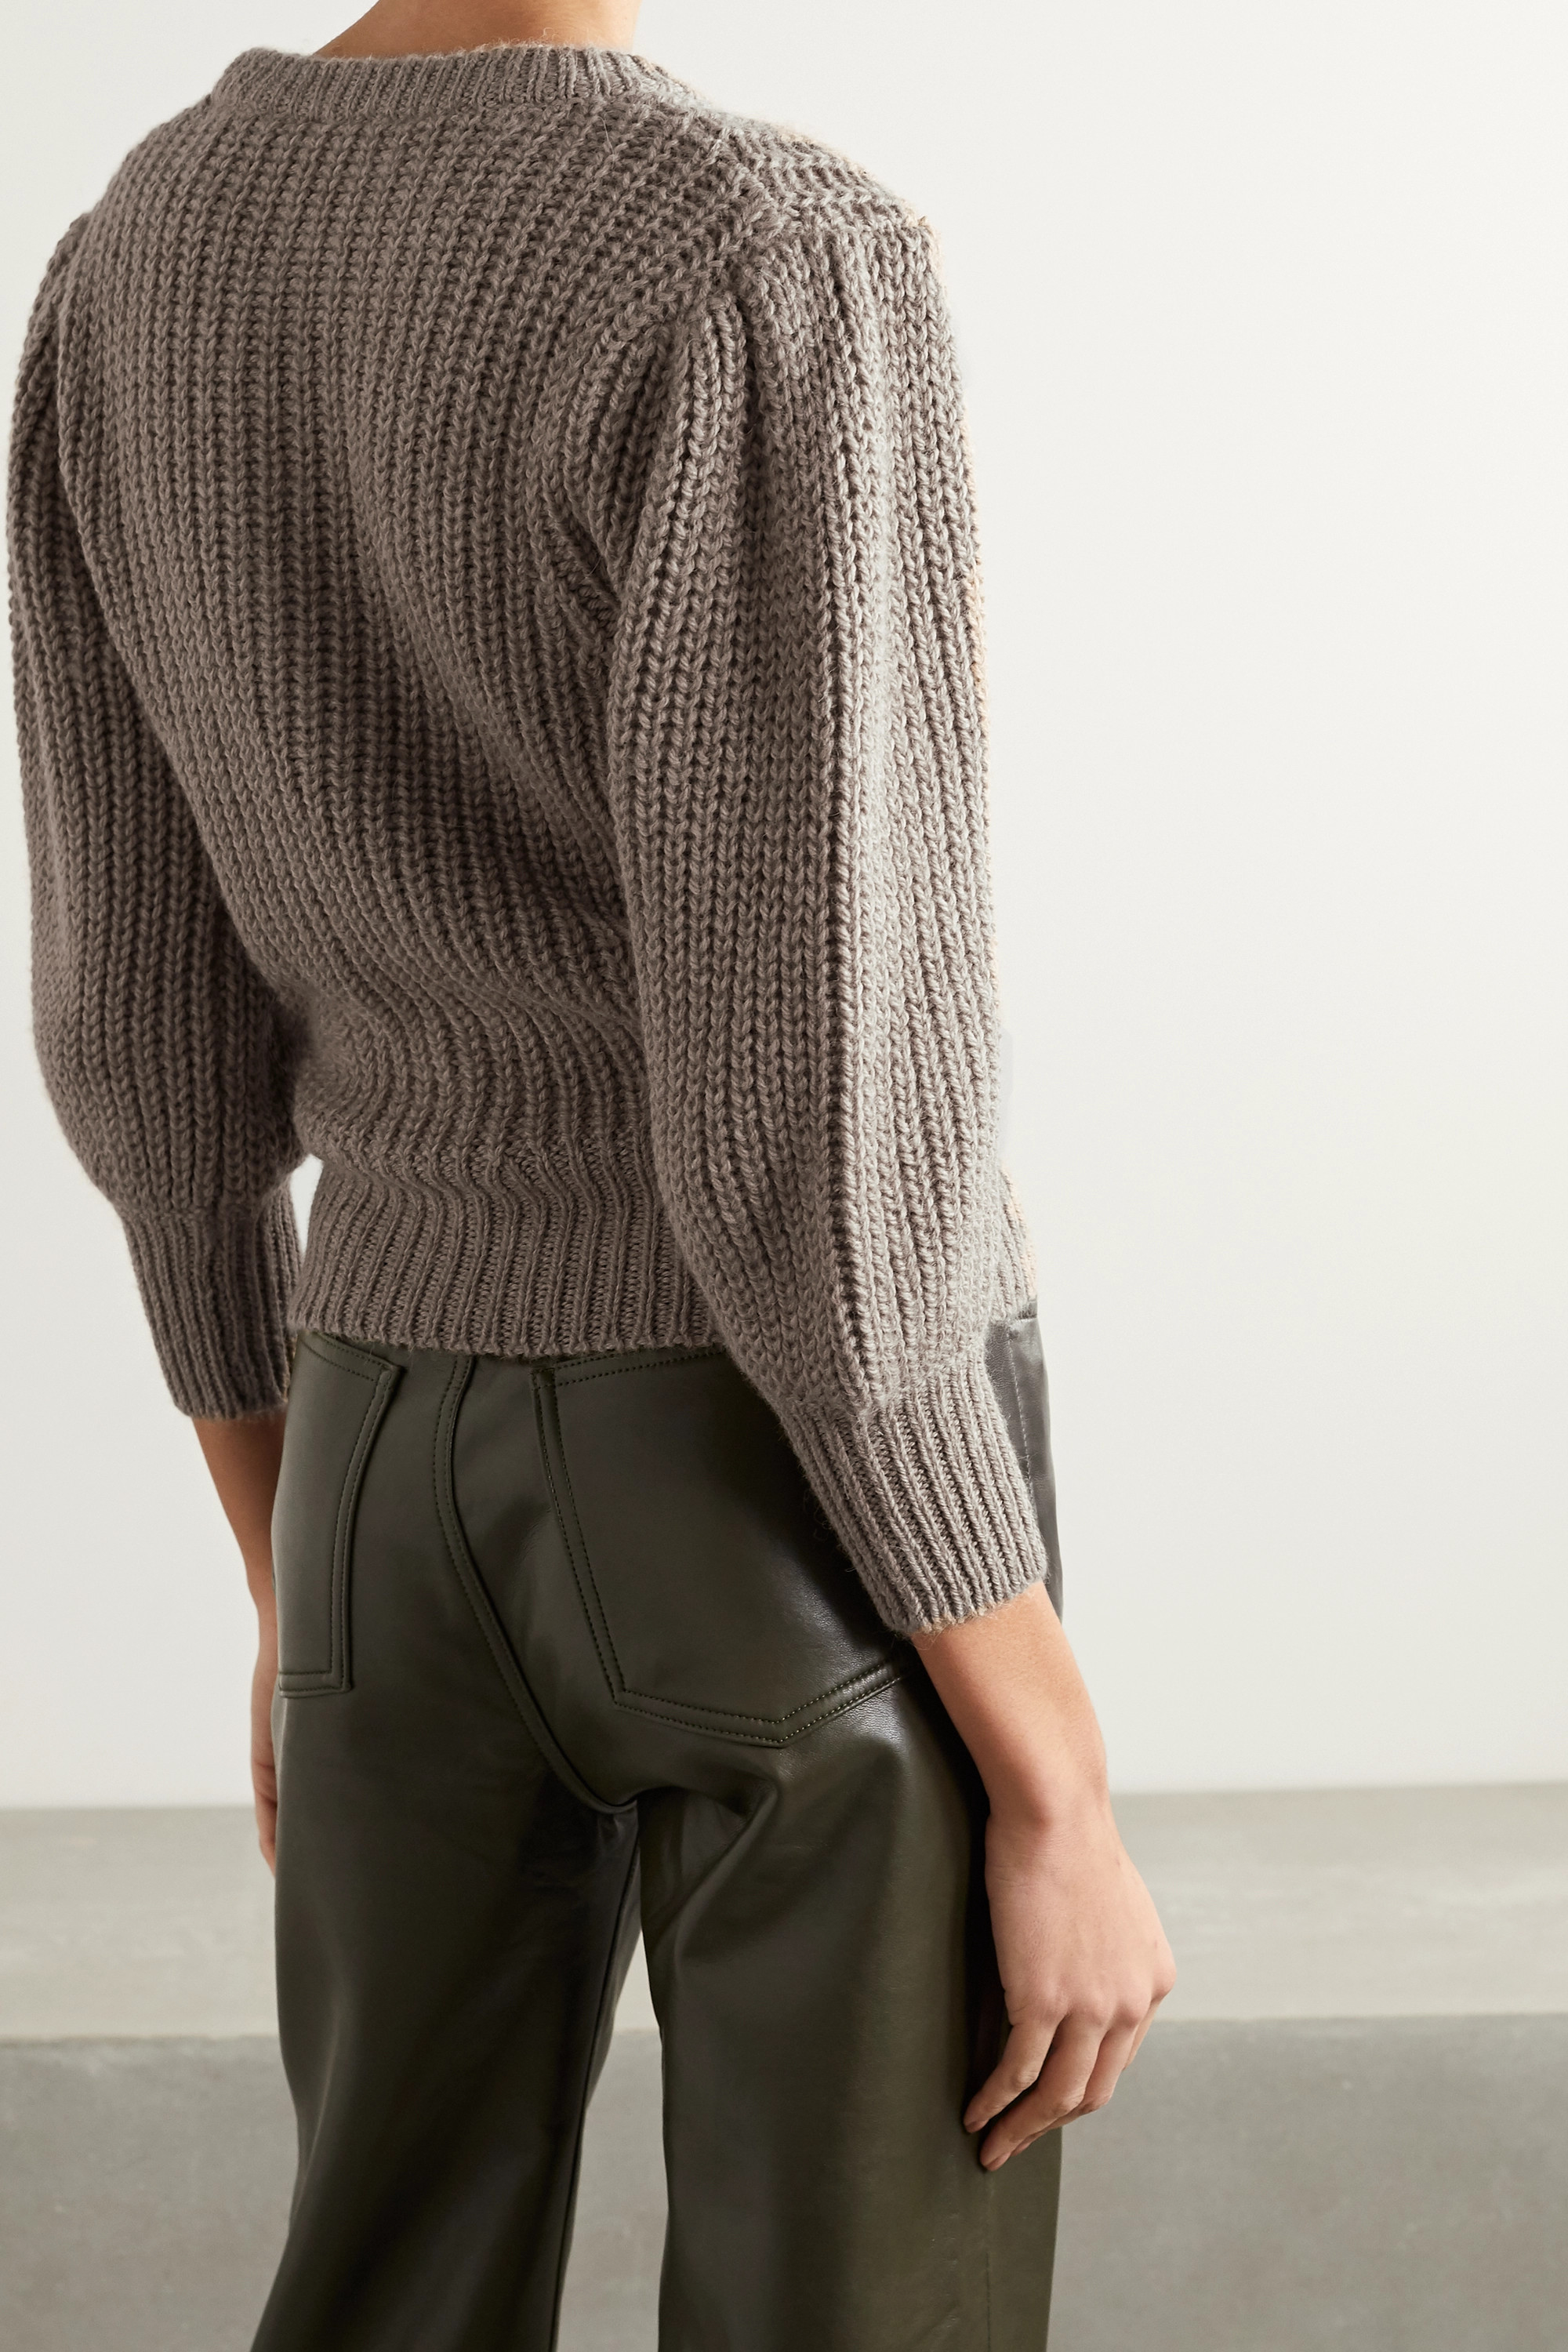 REFORMATION + NET SUSTAIN Moneta ribbed alpaca sweater